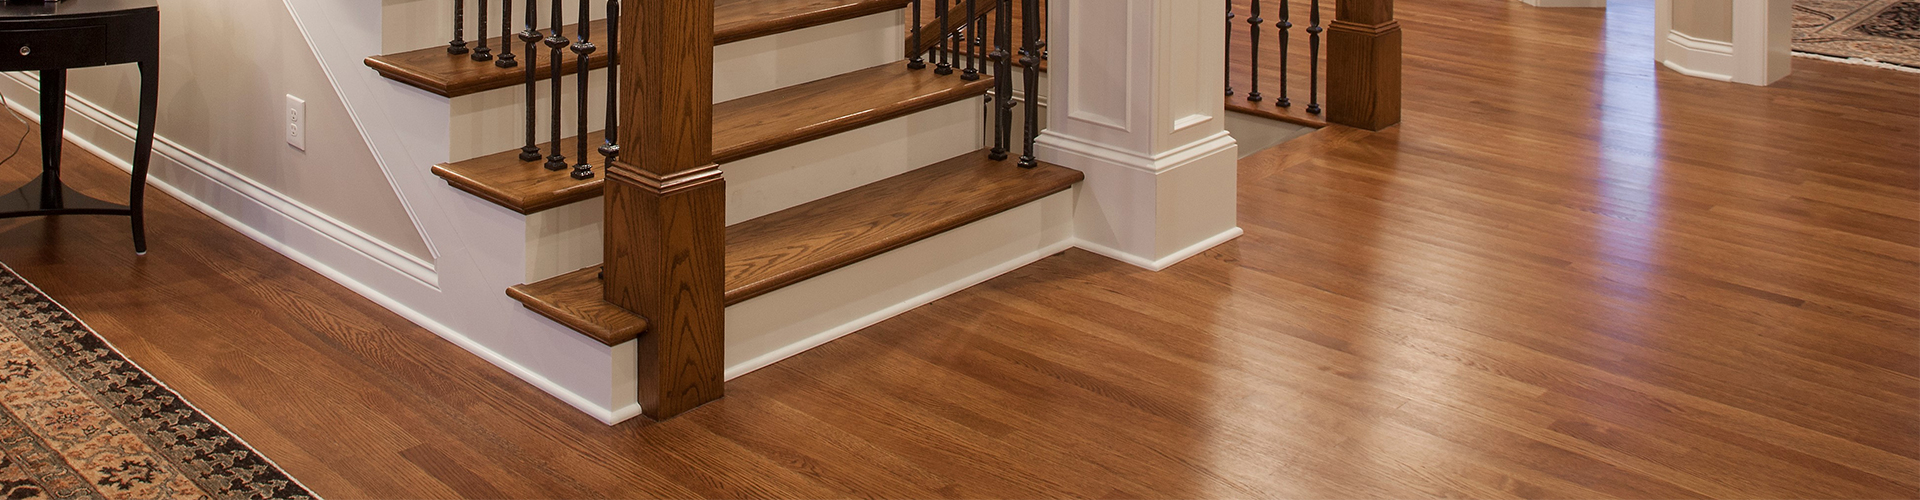 Hardwood flooring installation west chester